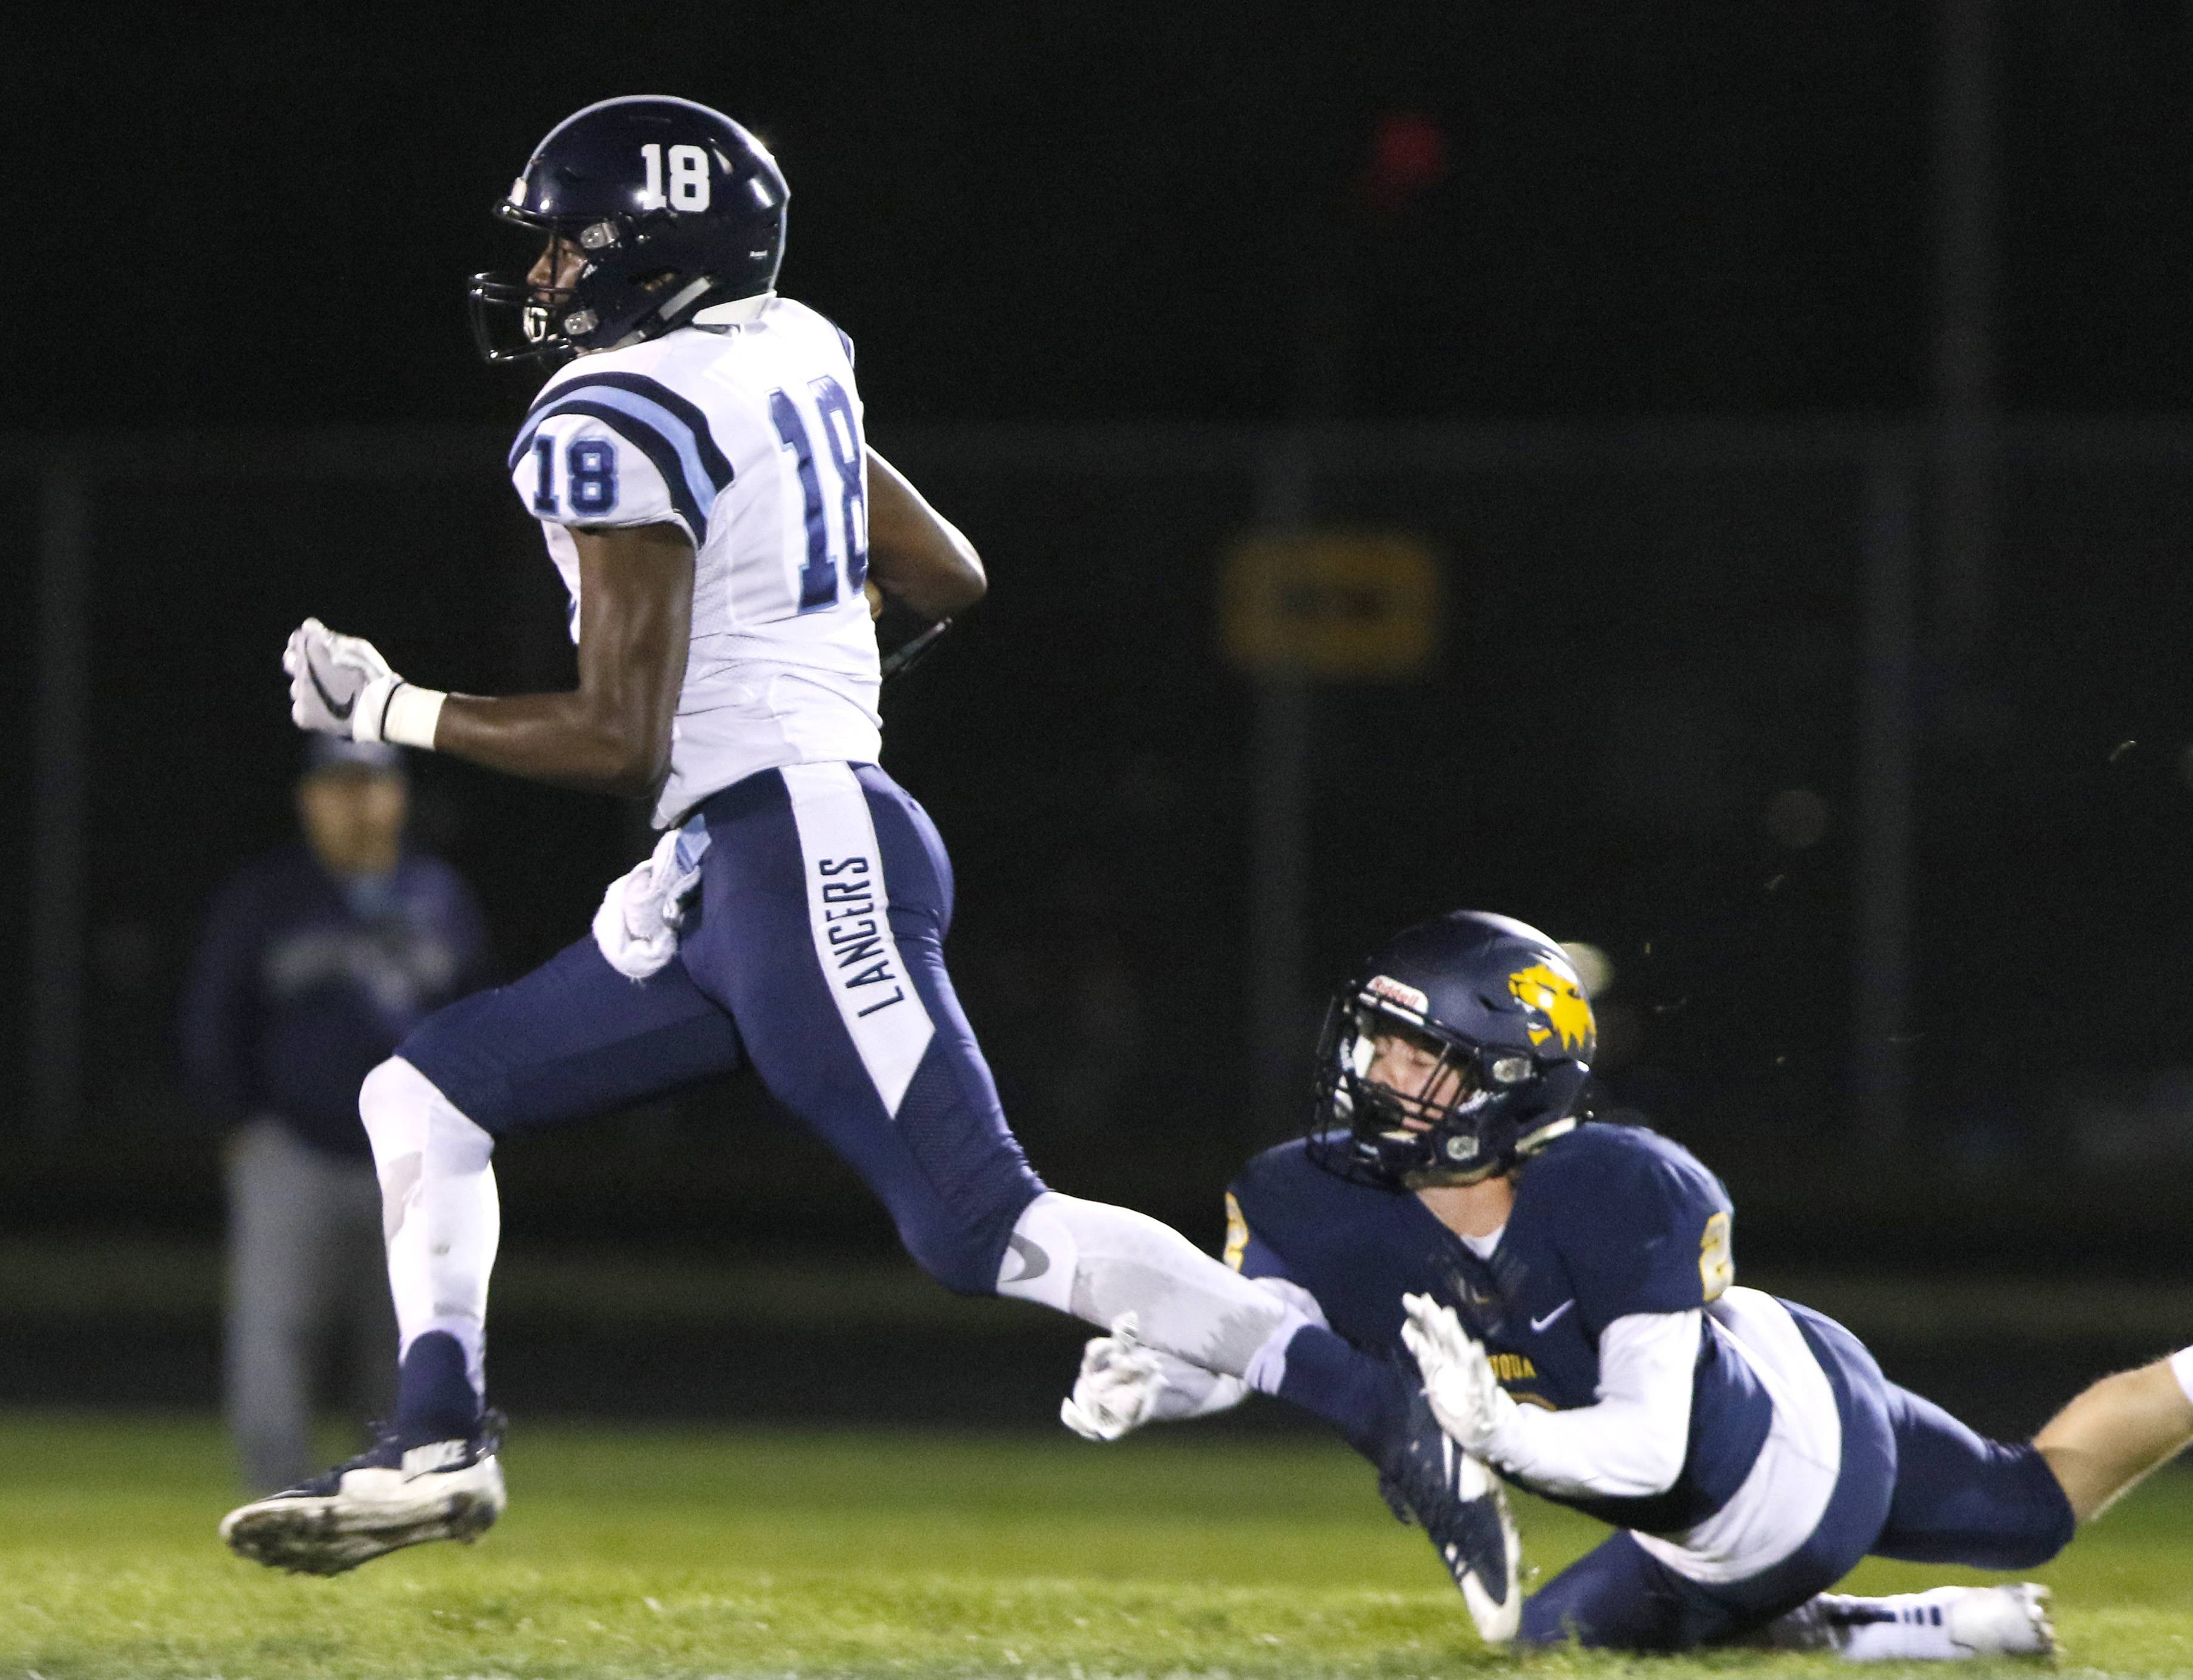 Lake Park beats Neuqua Valley in OT thriller